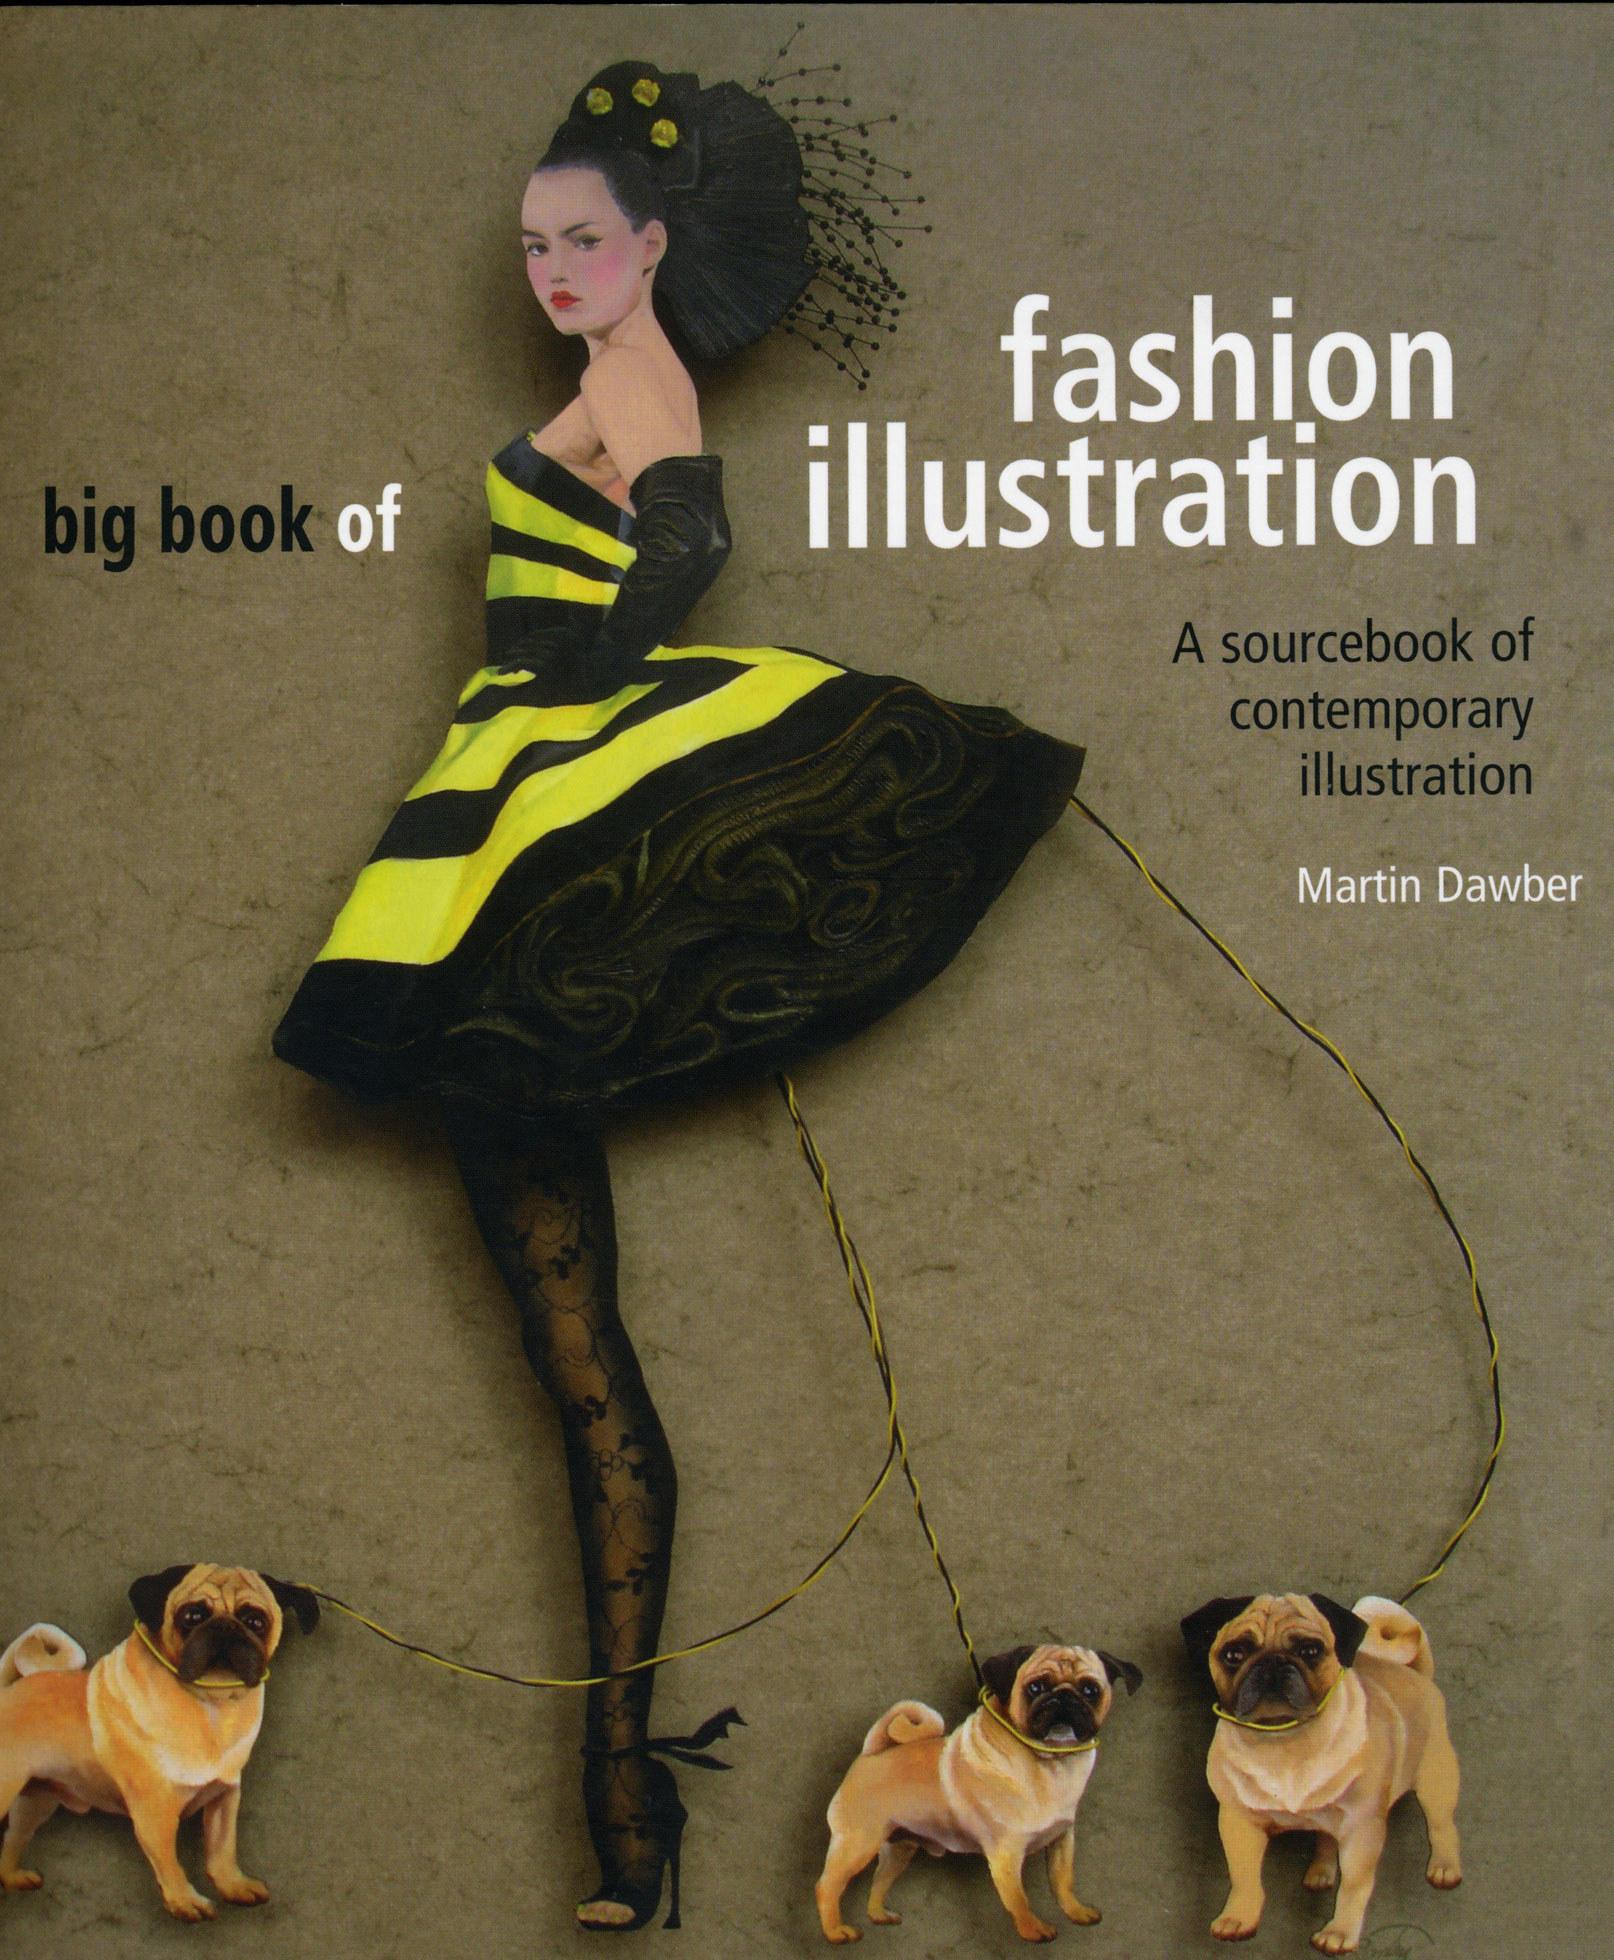 Bam's innovative fashion sketch designs are featured in this book.